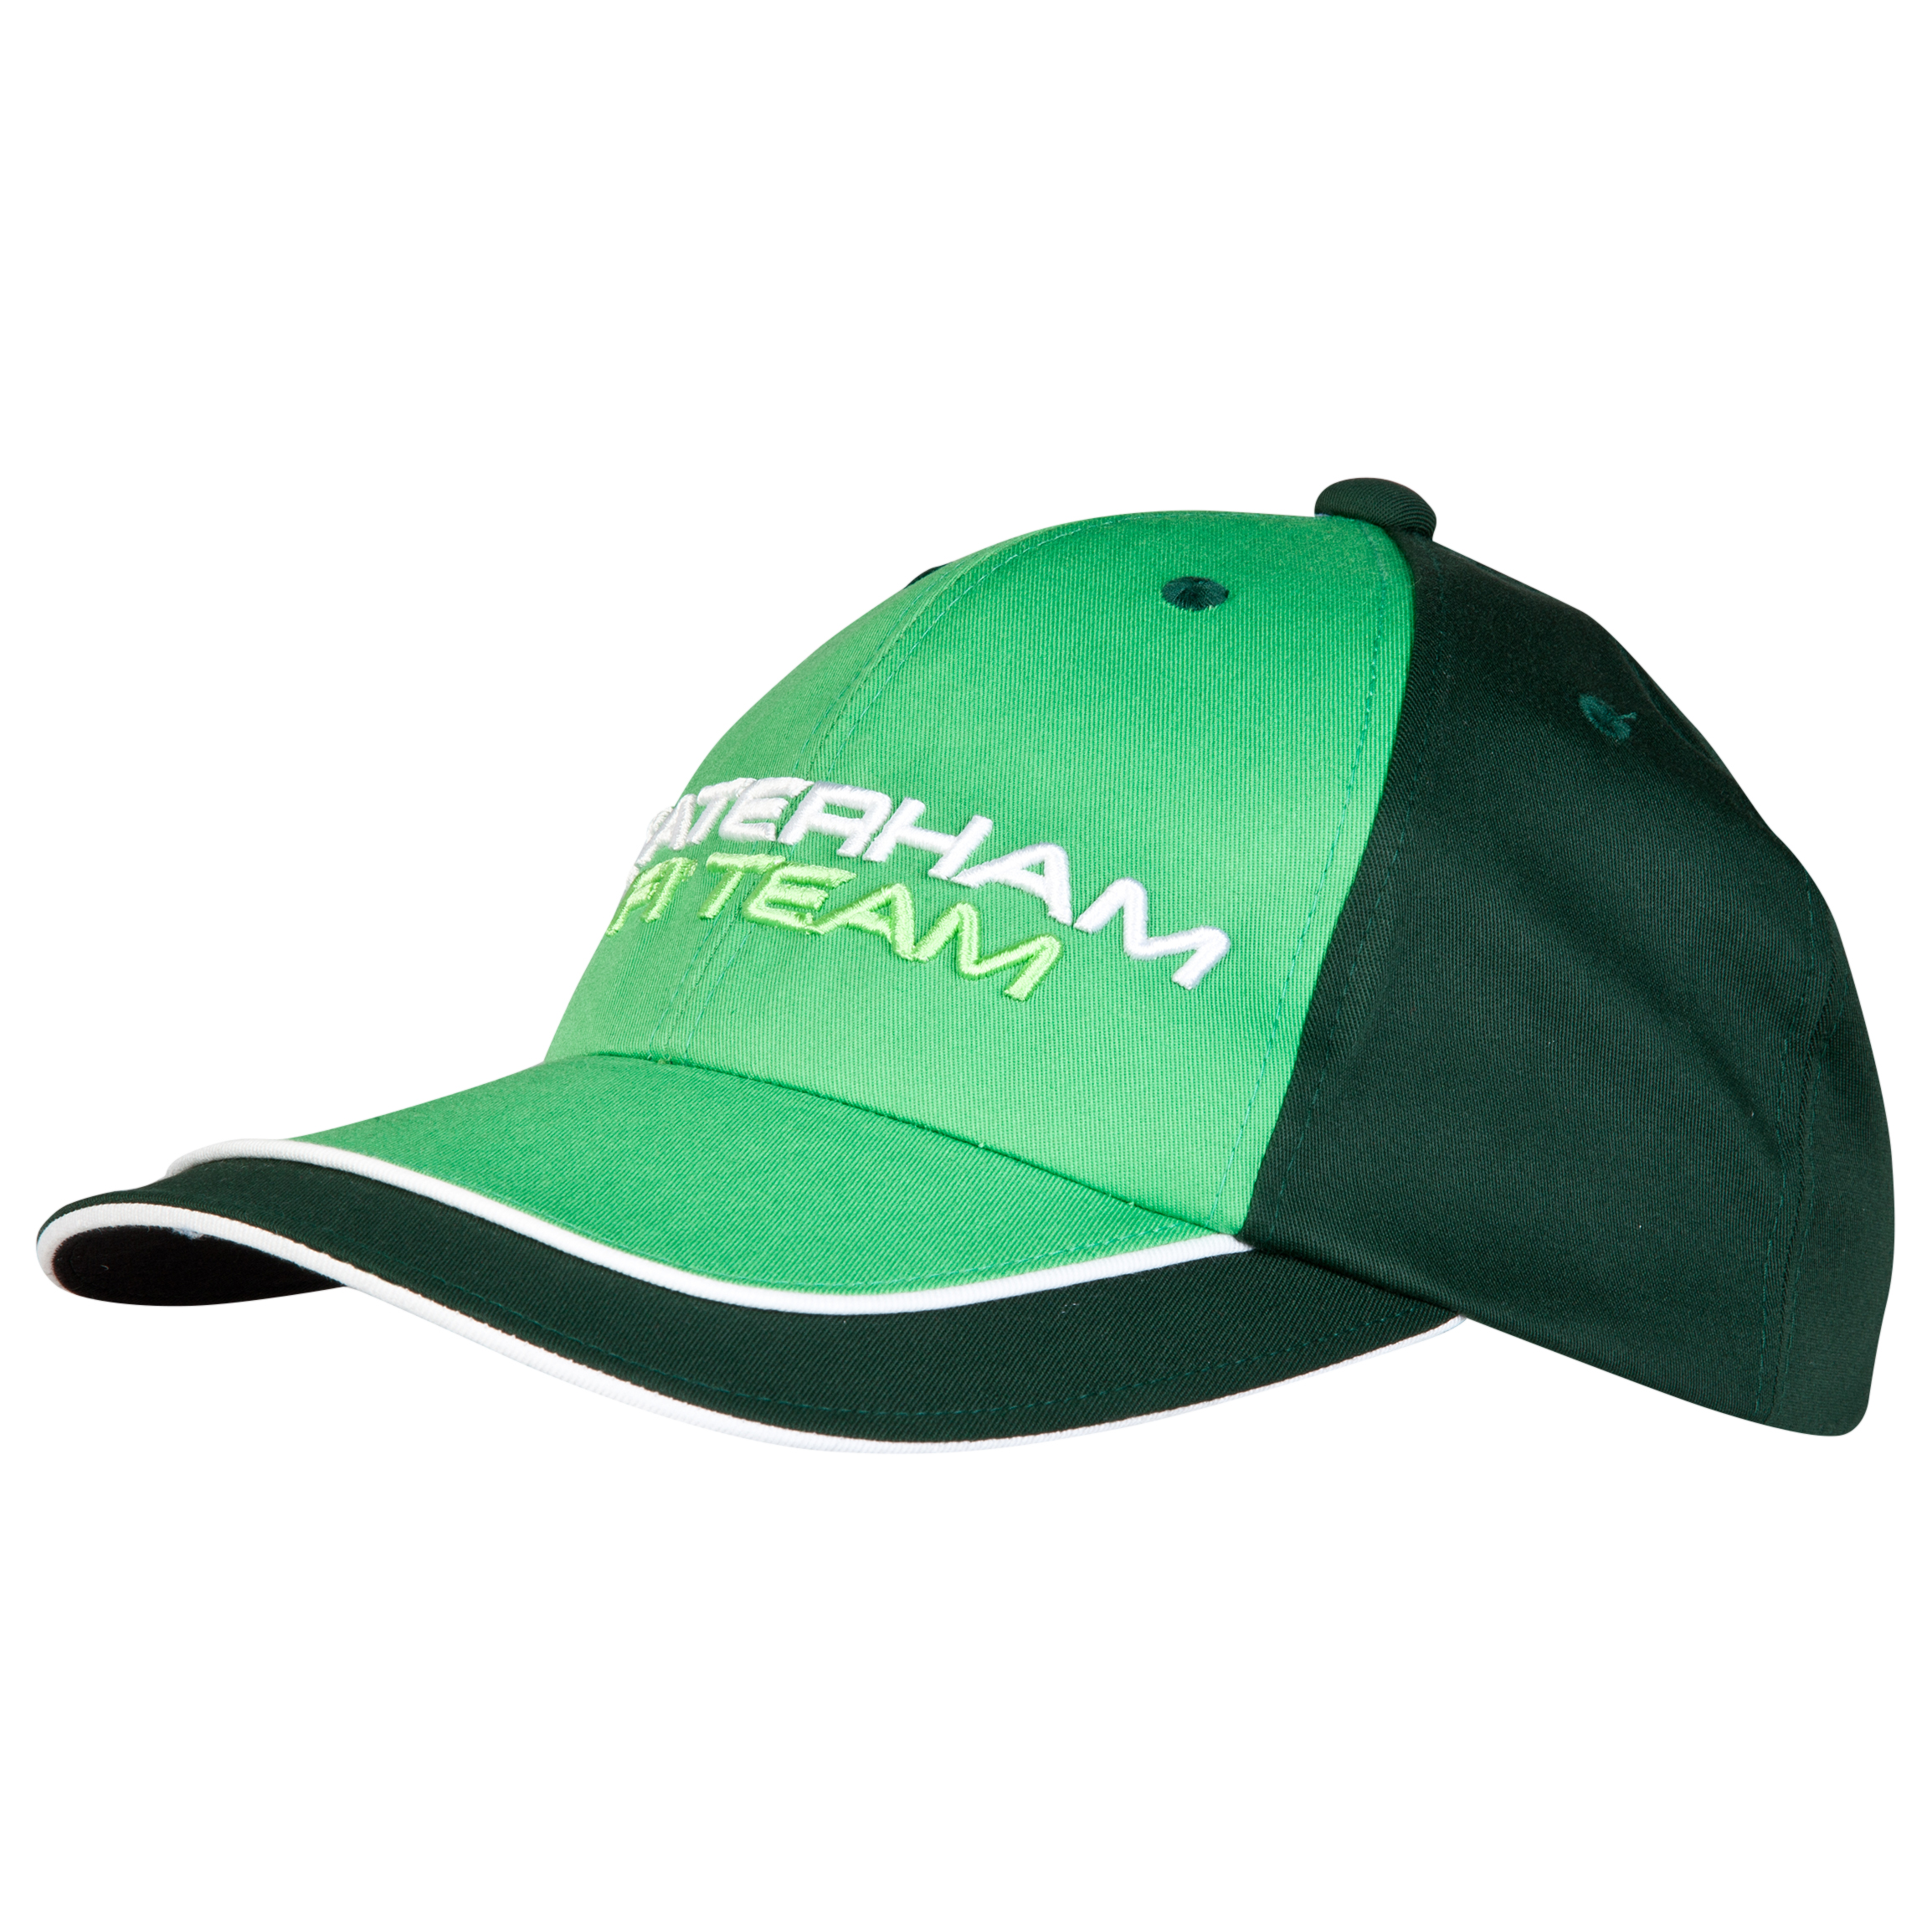 Caterham F1 Replica Team Cap